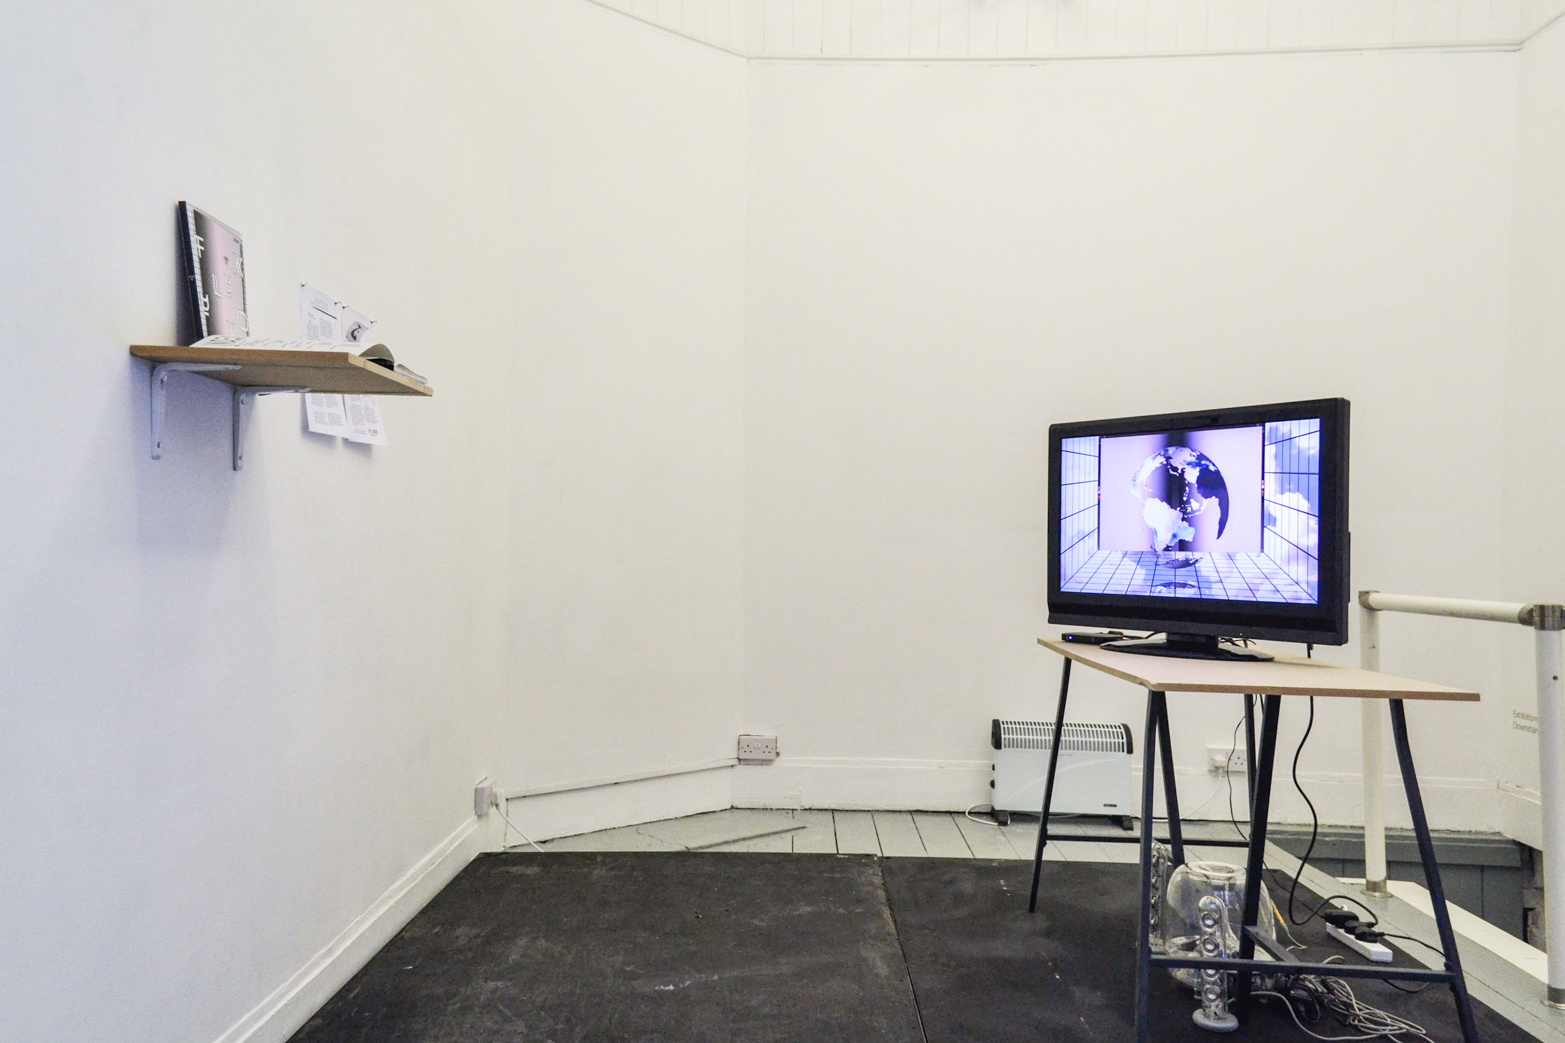 Wednesday, 23 January, O FLUXO, Installation shot.